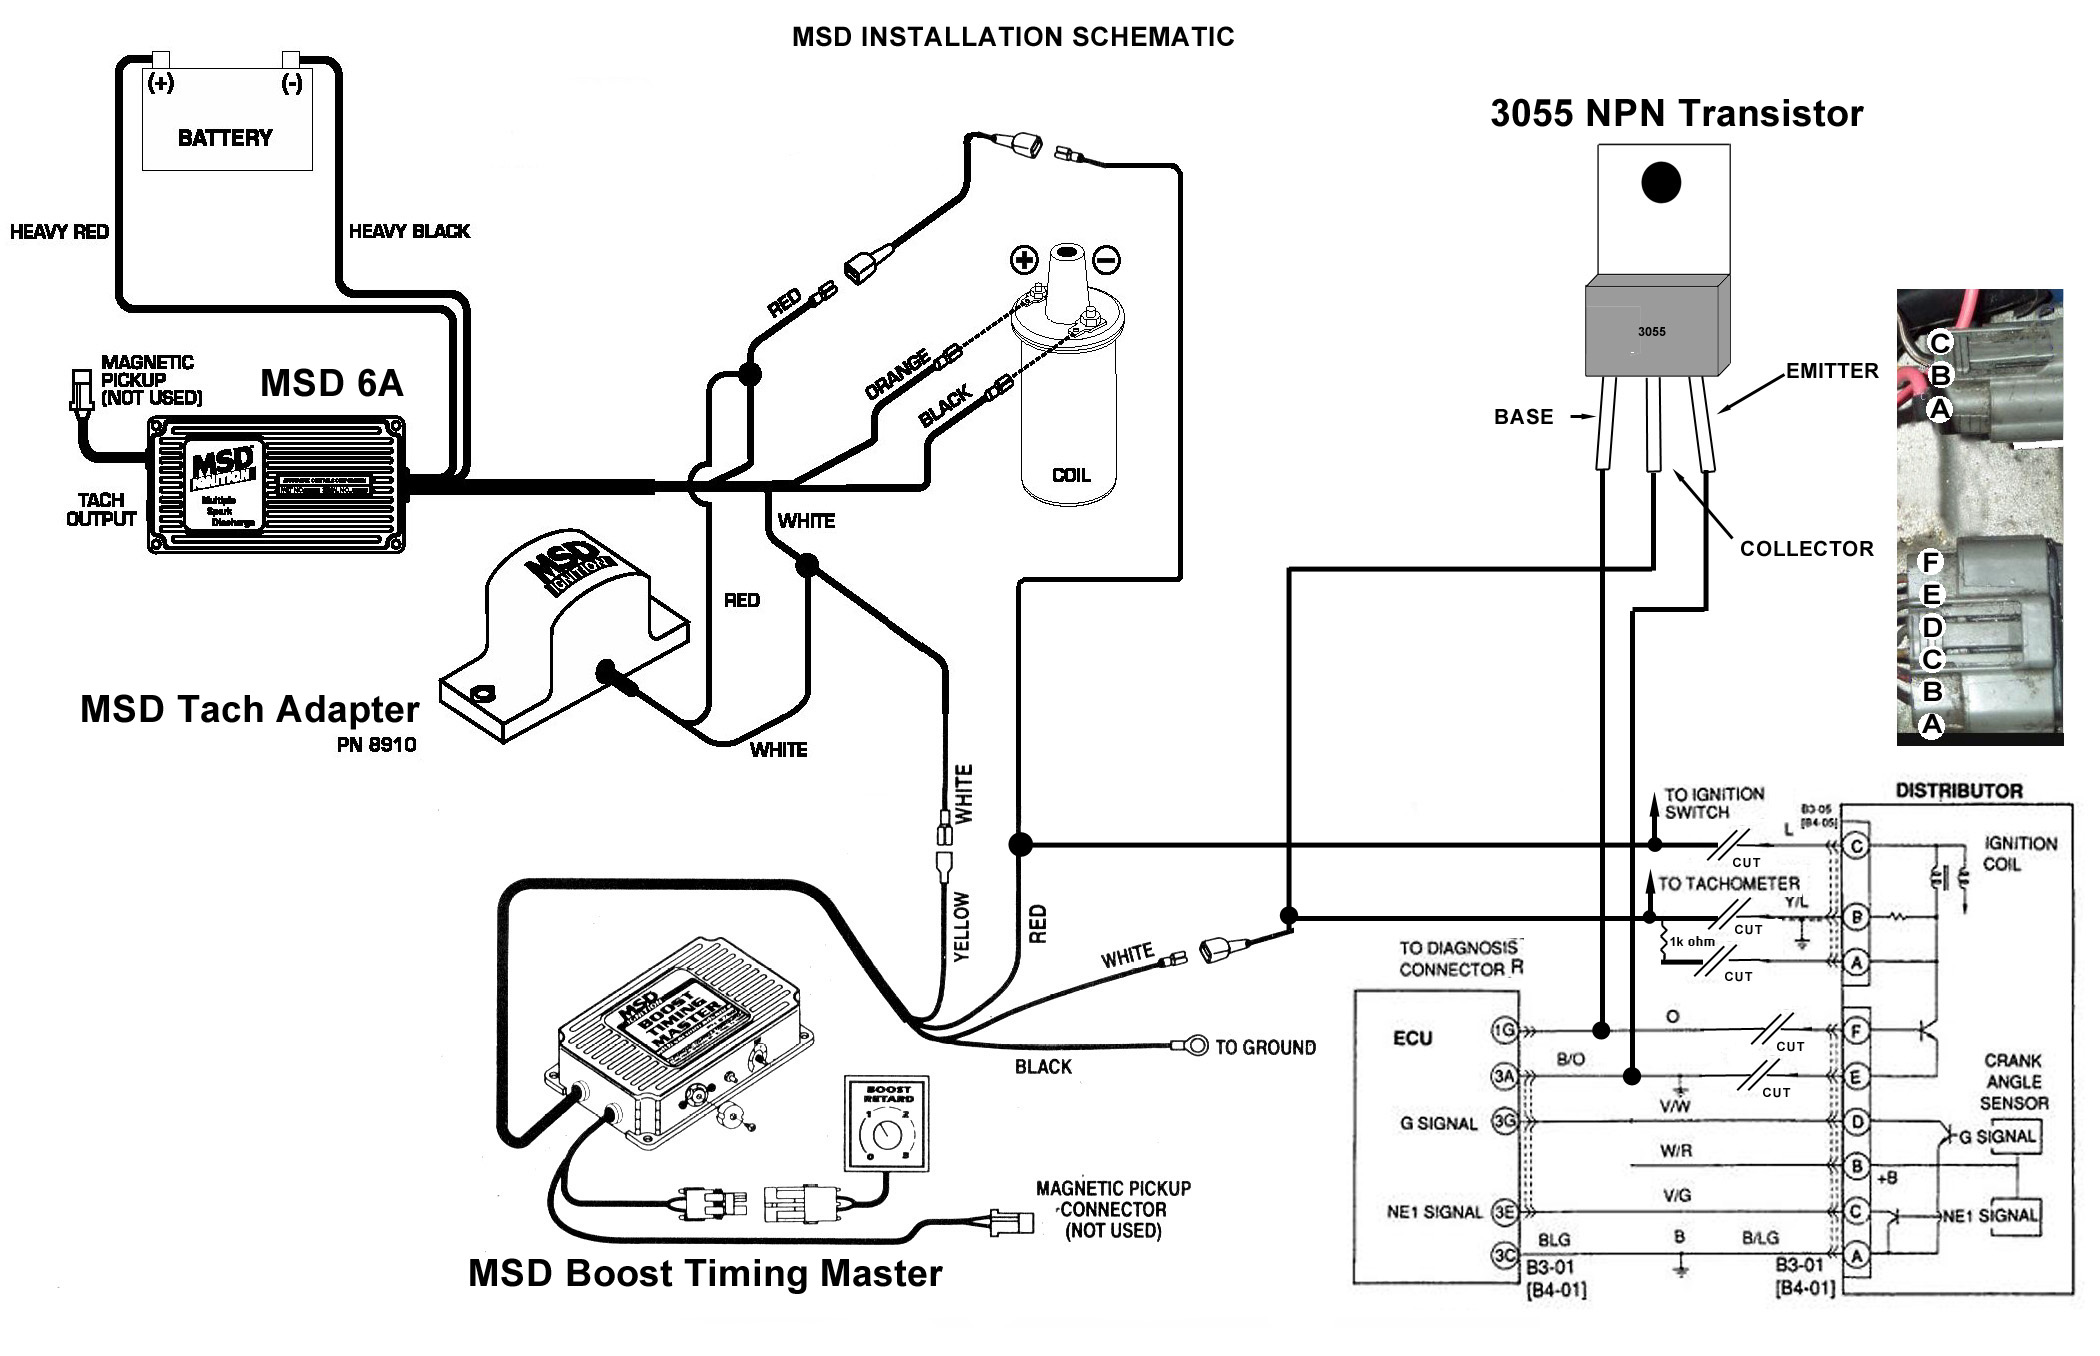 1993 mazda mx6 fuse box diagram wiring diagrams best mazda mx6 diagram wiring diagrams best mazda b2200 fuse box diagram 1990 mazda mx6 diagram data